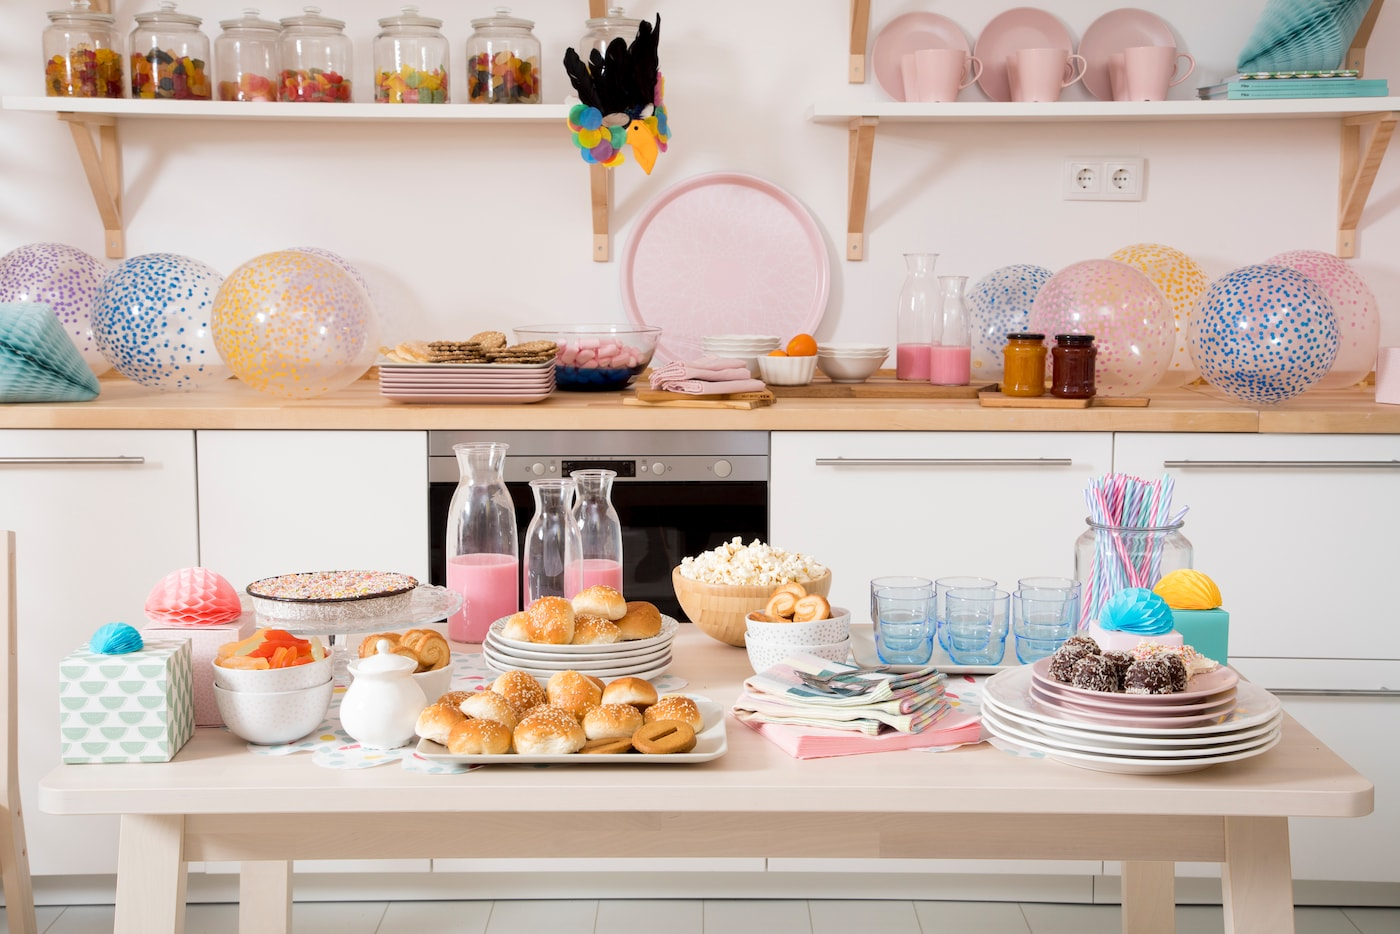 Ideas for children's birthday parties at home IKEA